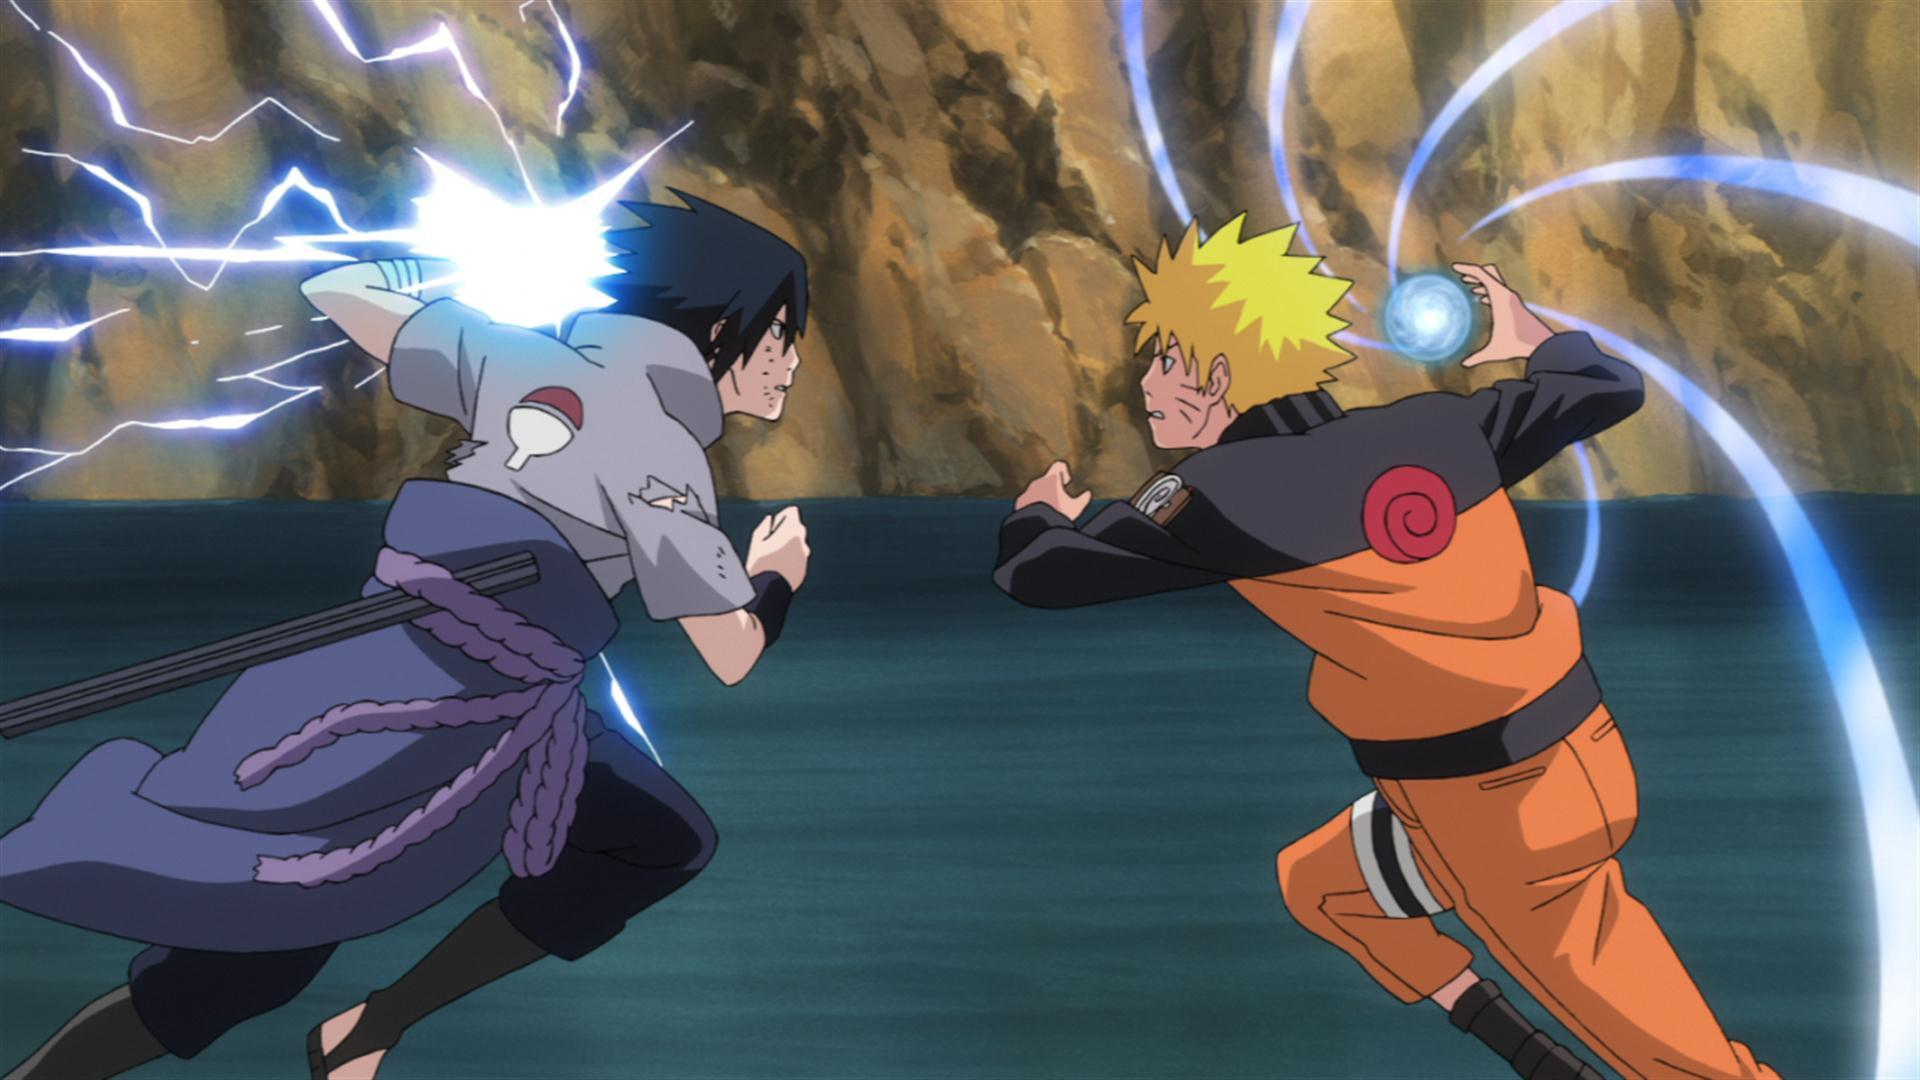 Naruto Vs Sasuke Wallpapers Shippuden 19977 Full HD Wallpapers